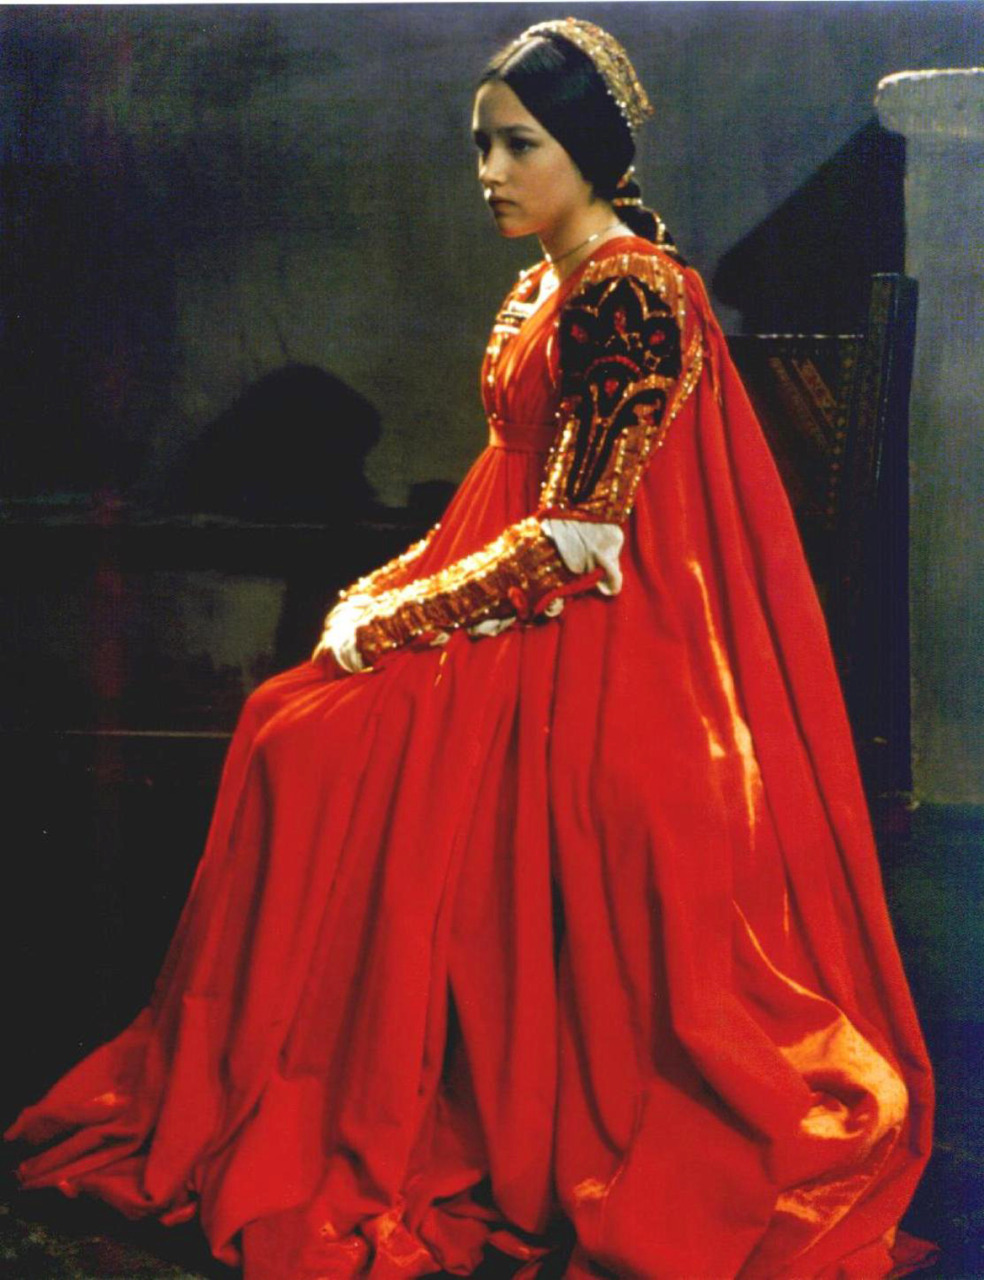 Misato Karibe: Romeo and Juliet-1968